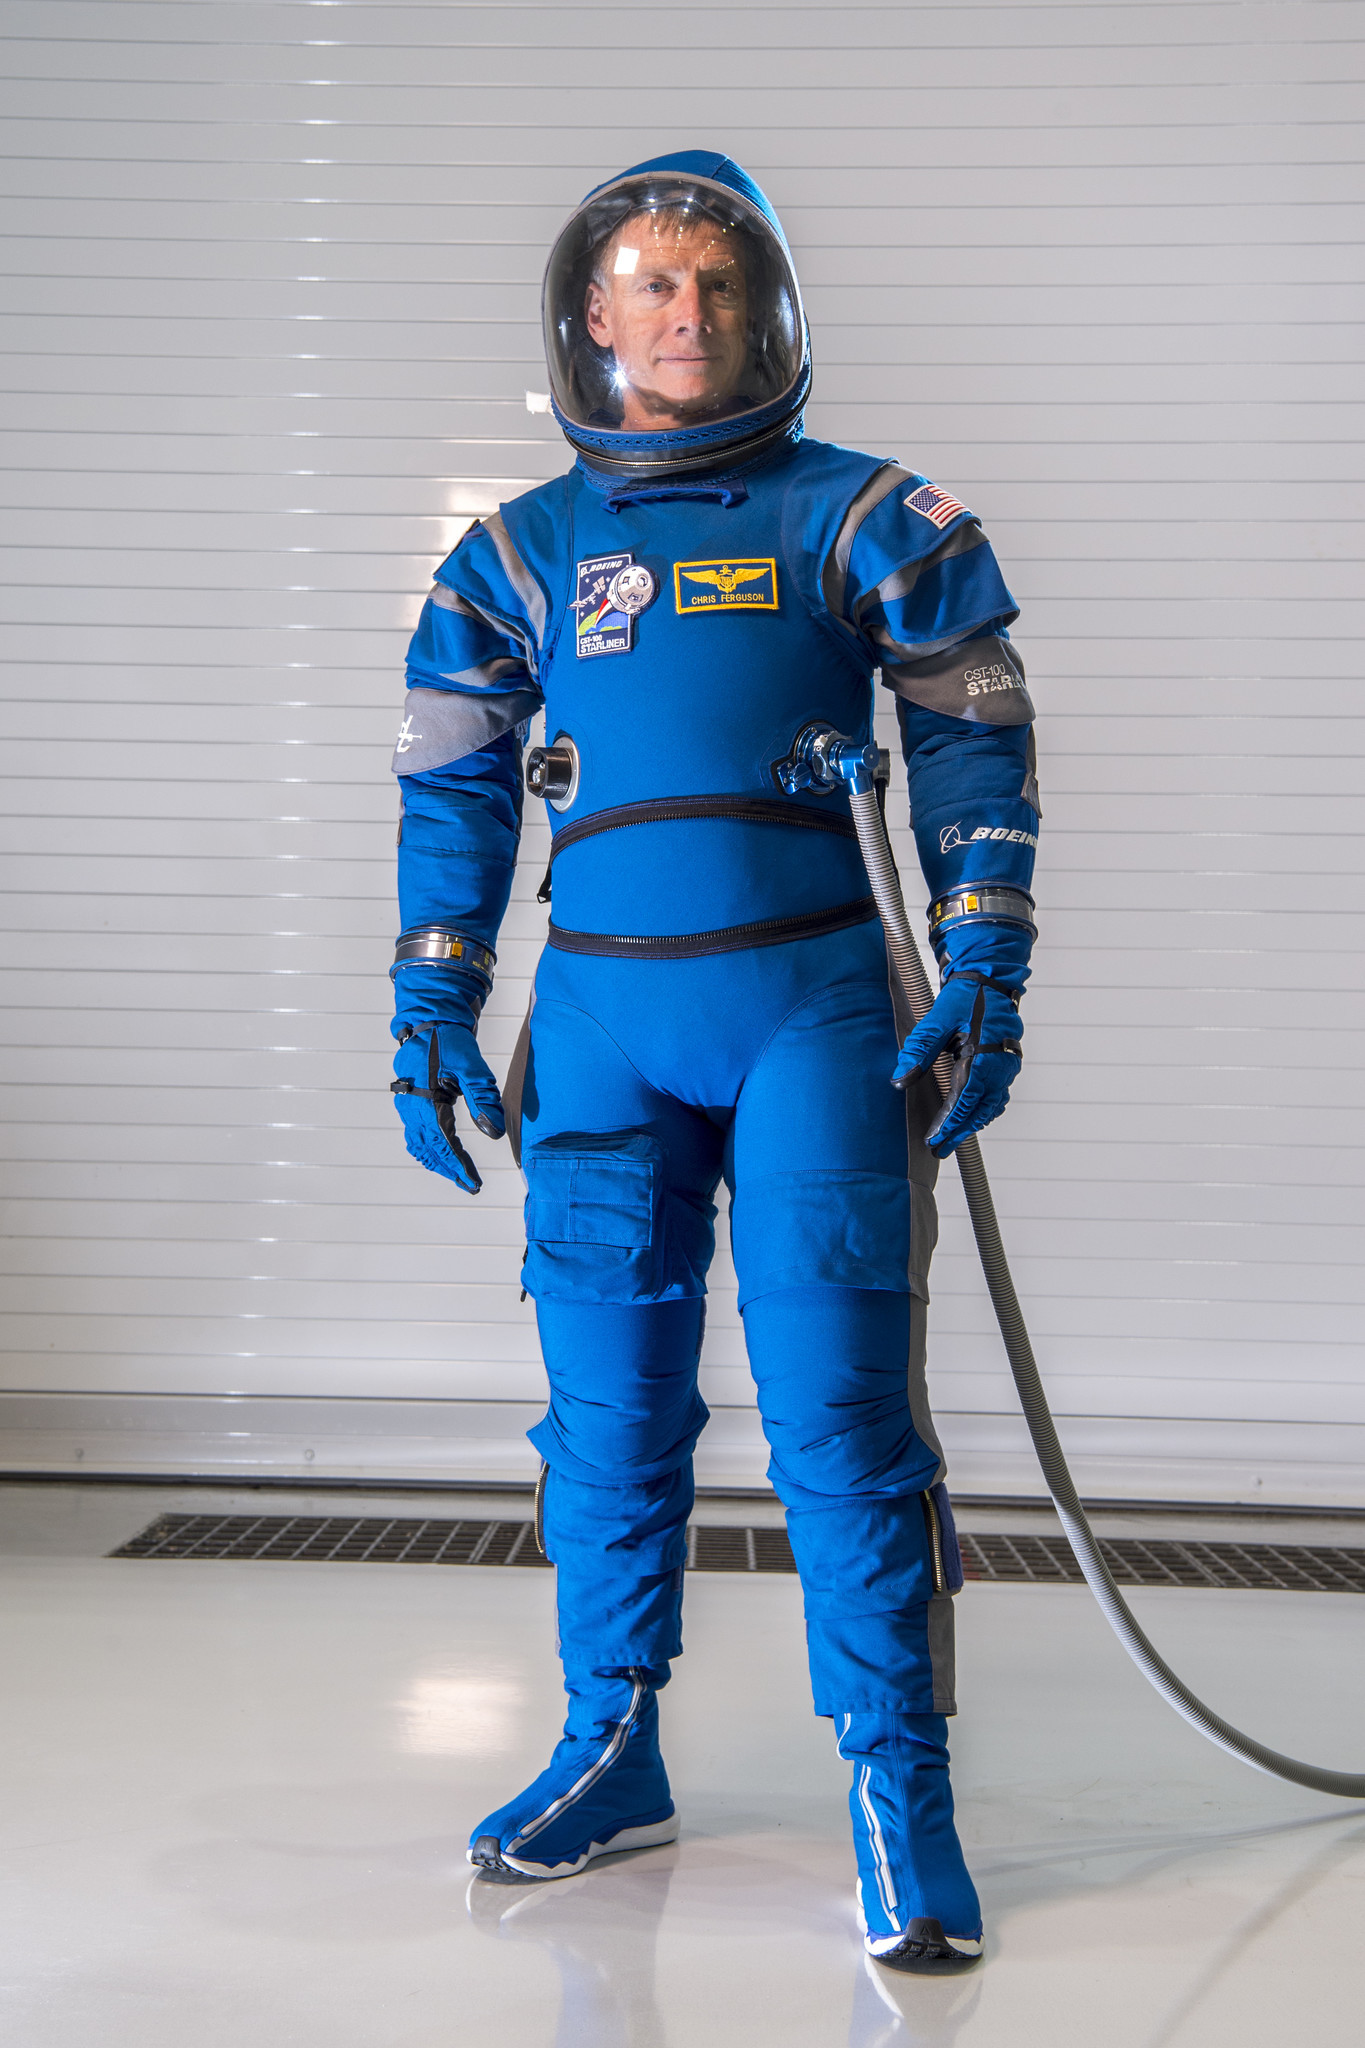 Chris Ferguson, a former NASA astronaut and current Boeing director of Starliner crew and mission systems, wears the Boeing spacesuit.